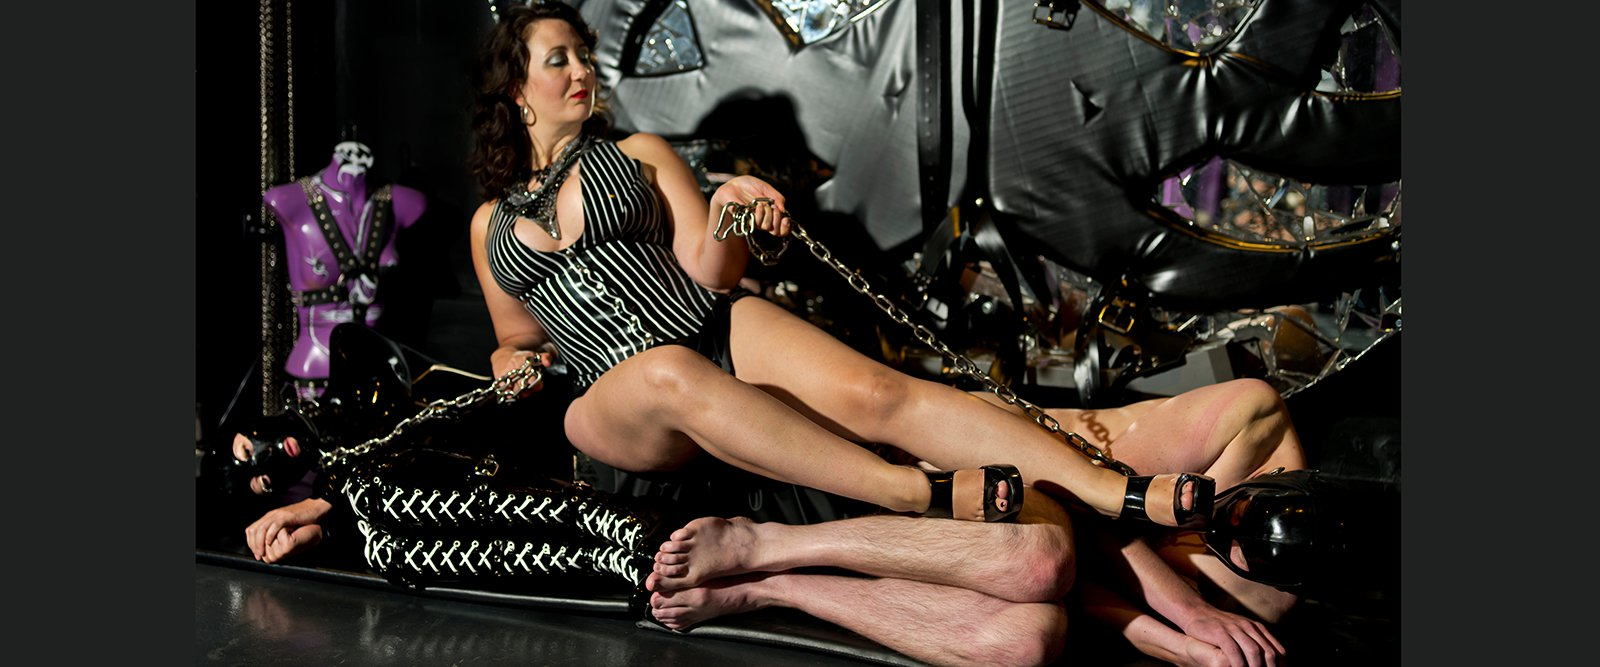 Mistress Electra Amore-2